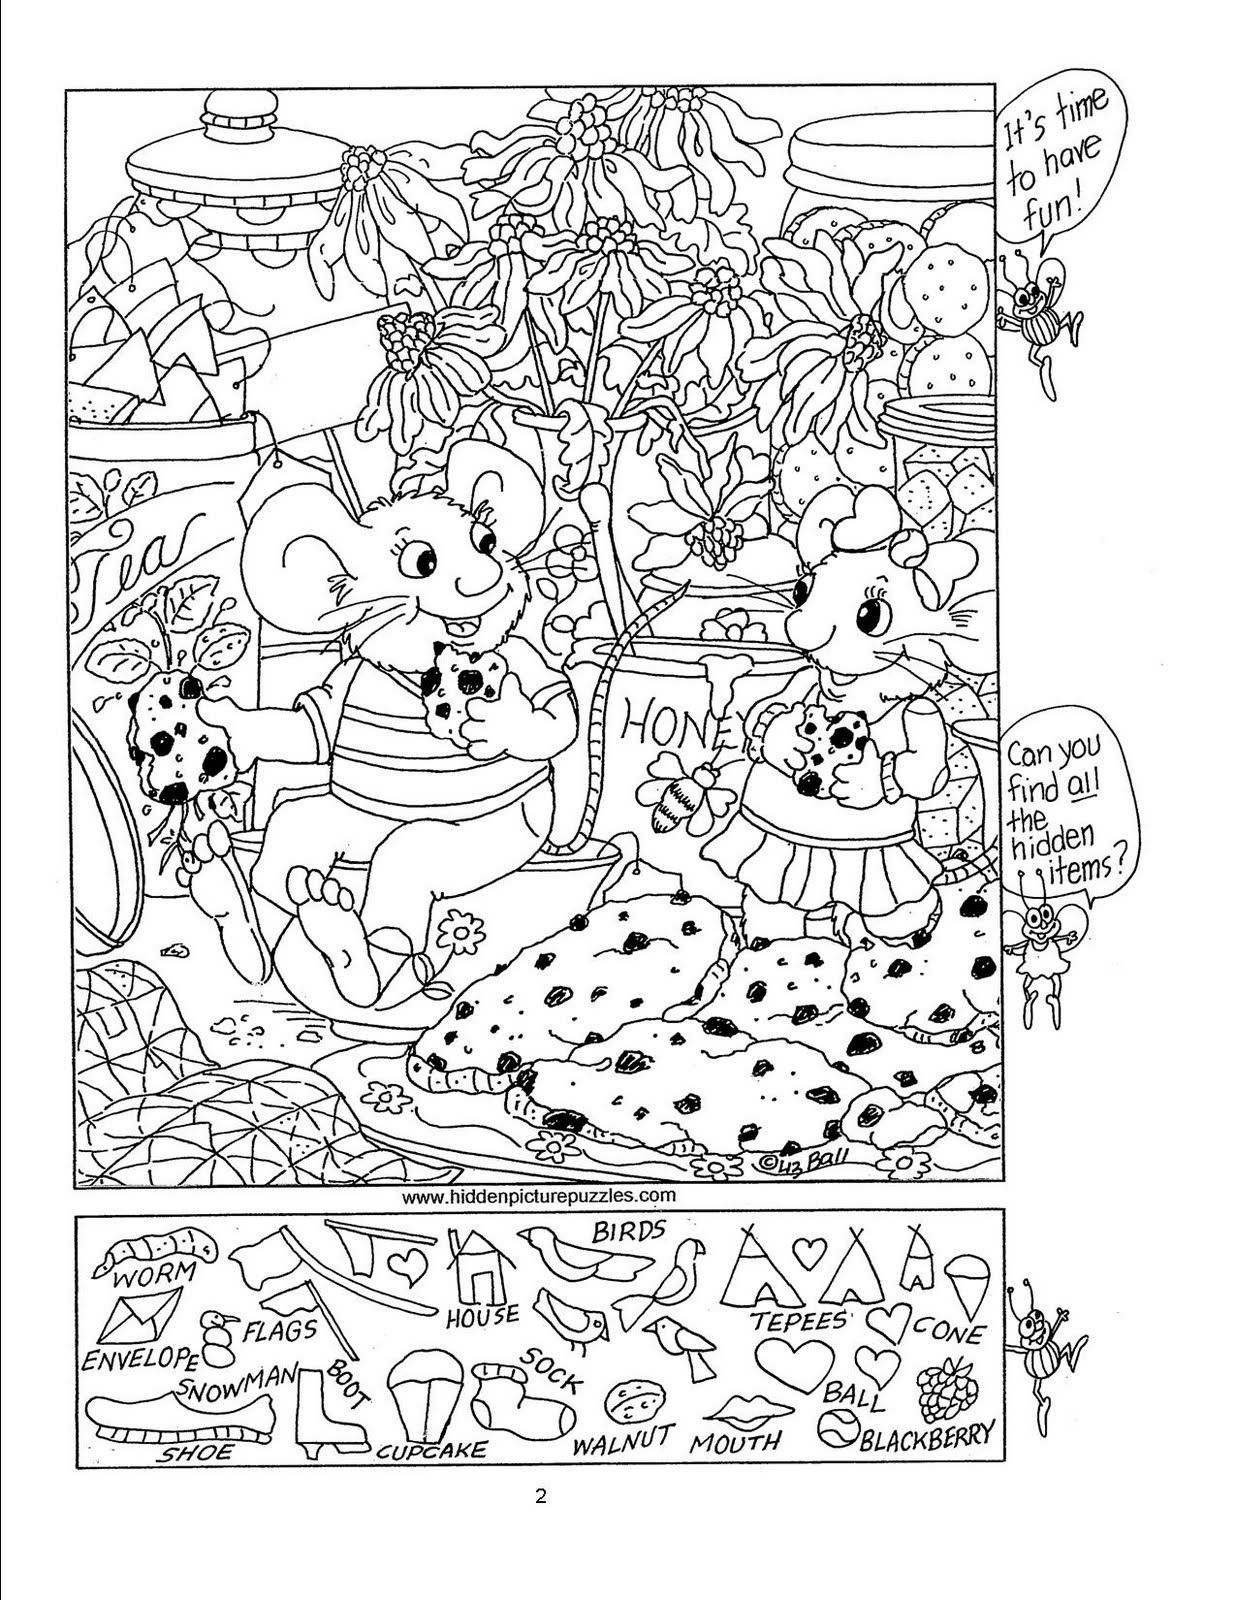 Hidden Picture Puzzles | Hidden Objects for Colouring | Pinterest ...